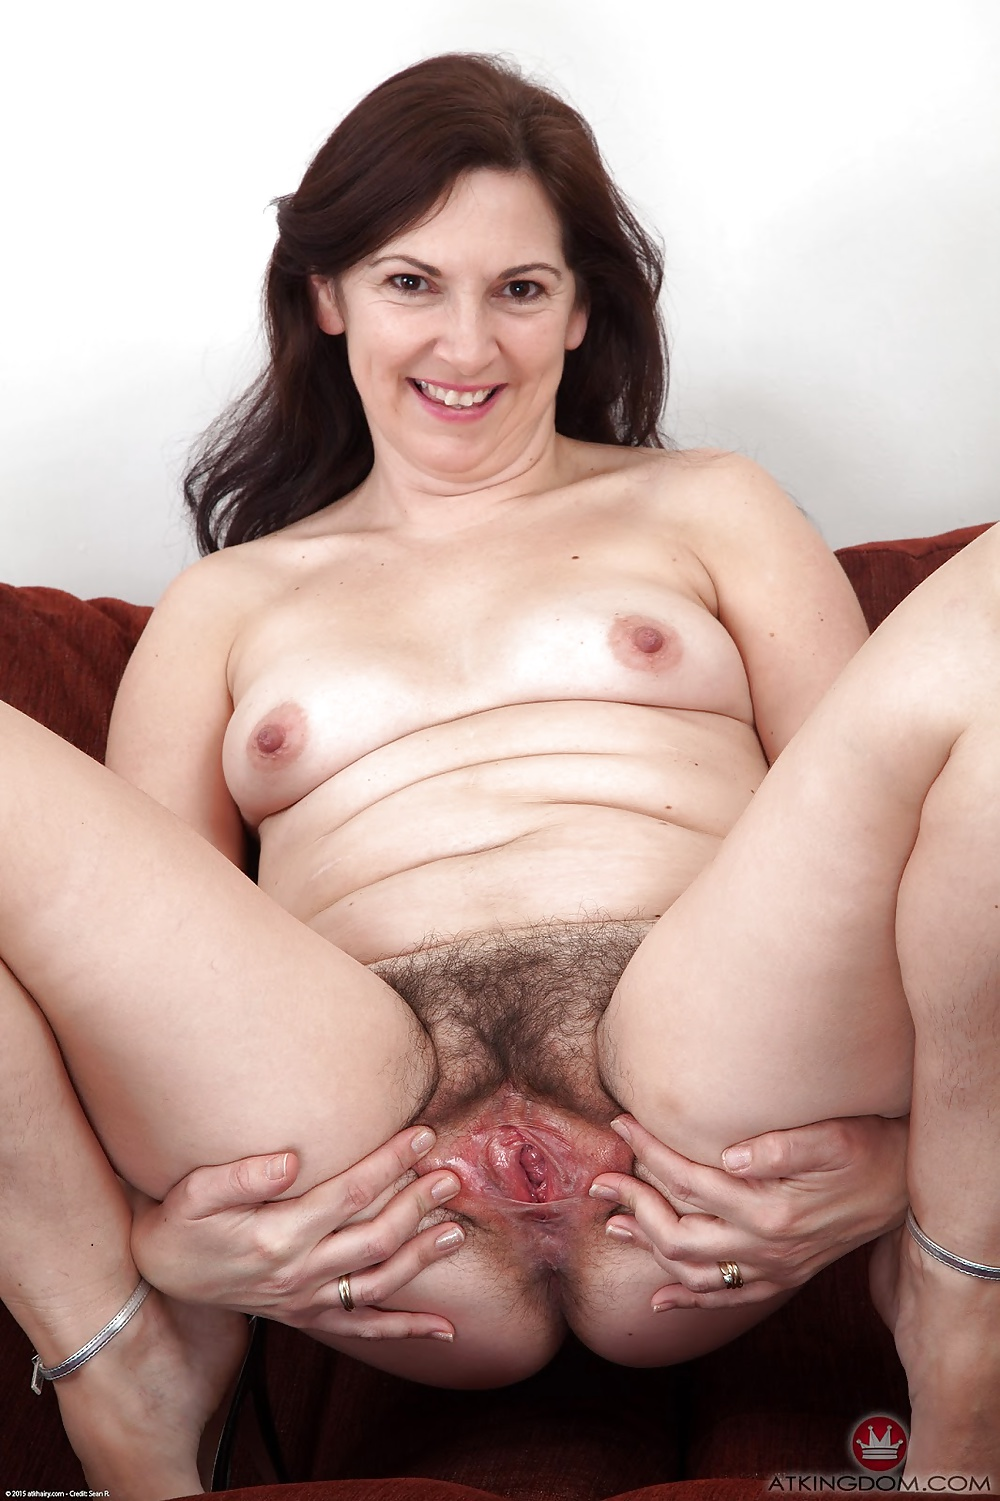 Nude vagina pictures middle age women